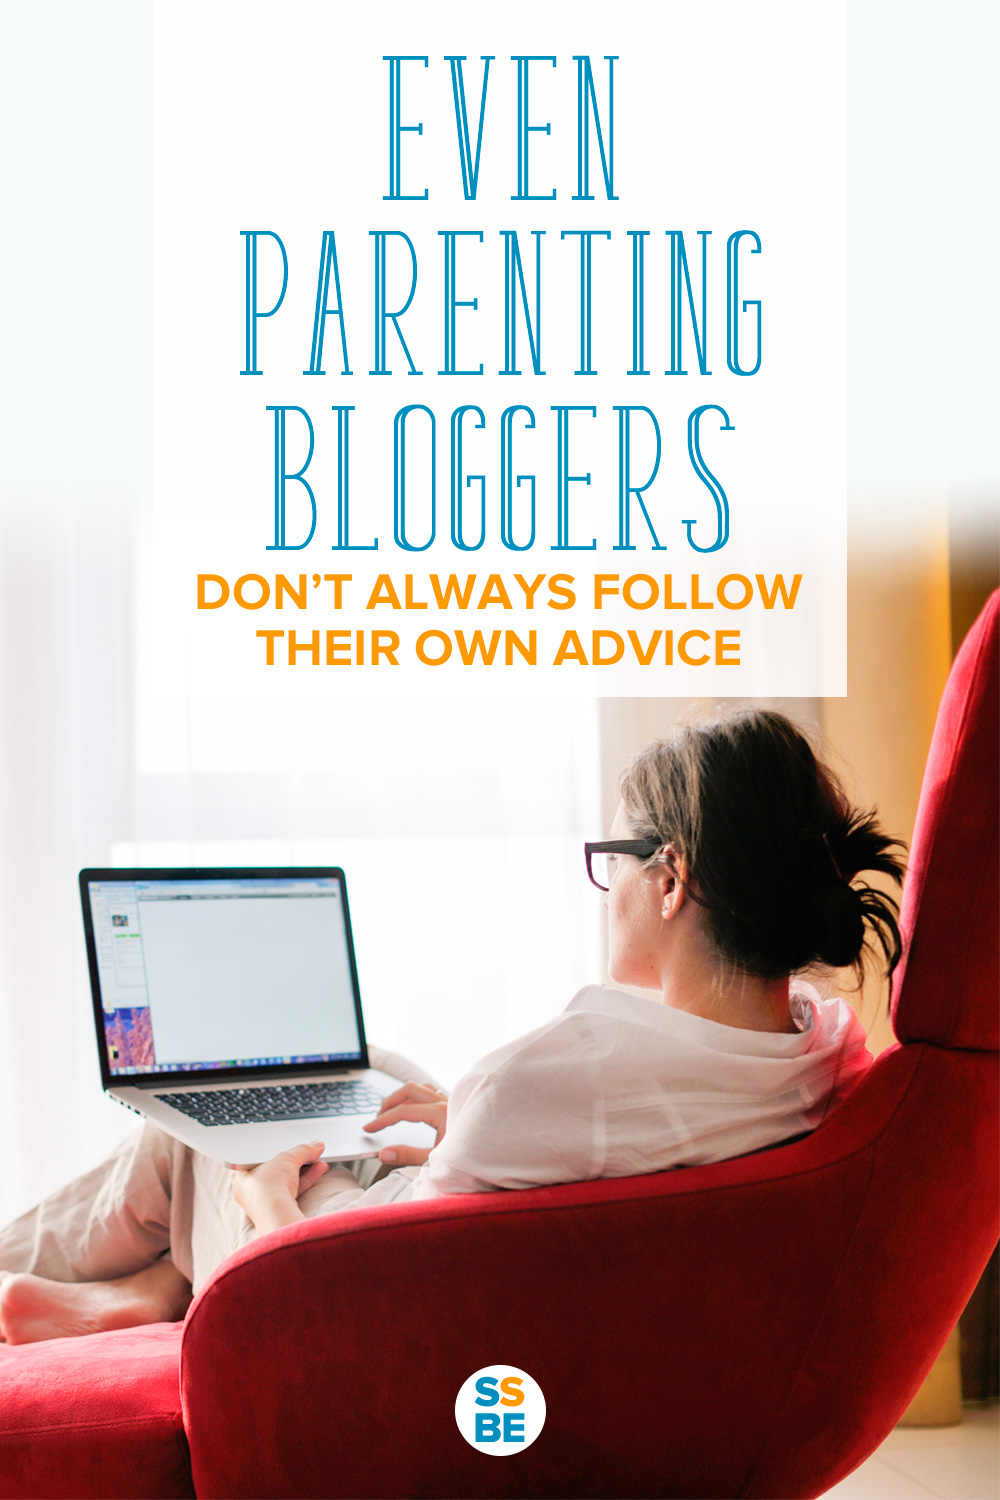 Ever feel like everyone else has got this parenting thing down but you? Don't worry—even parenting bloggers don't always follow their own advice.